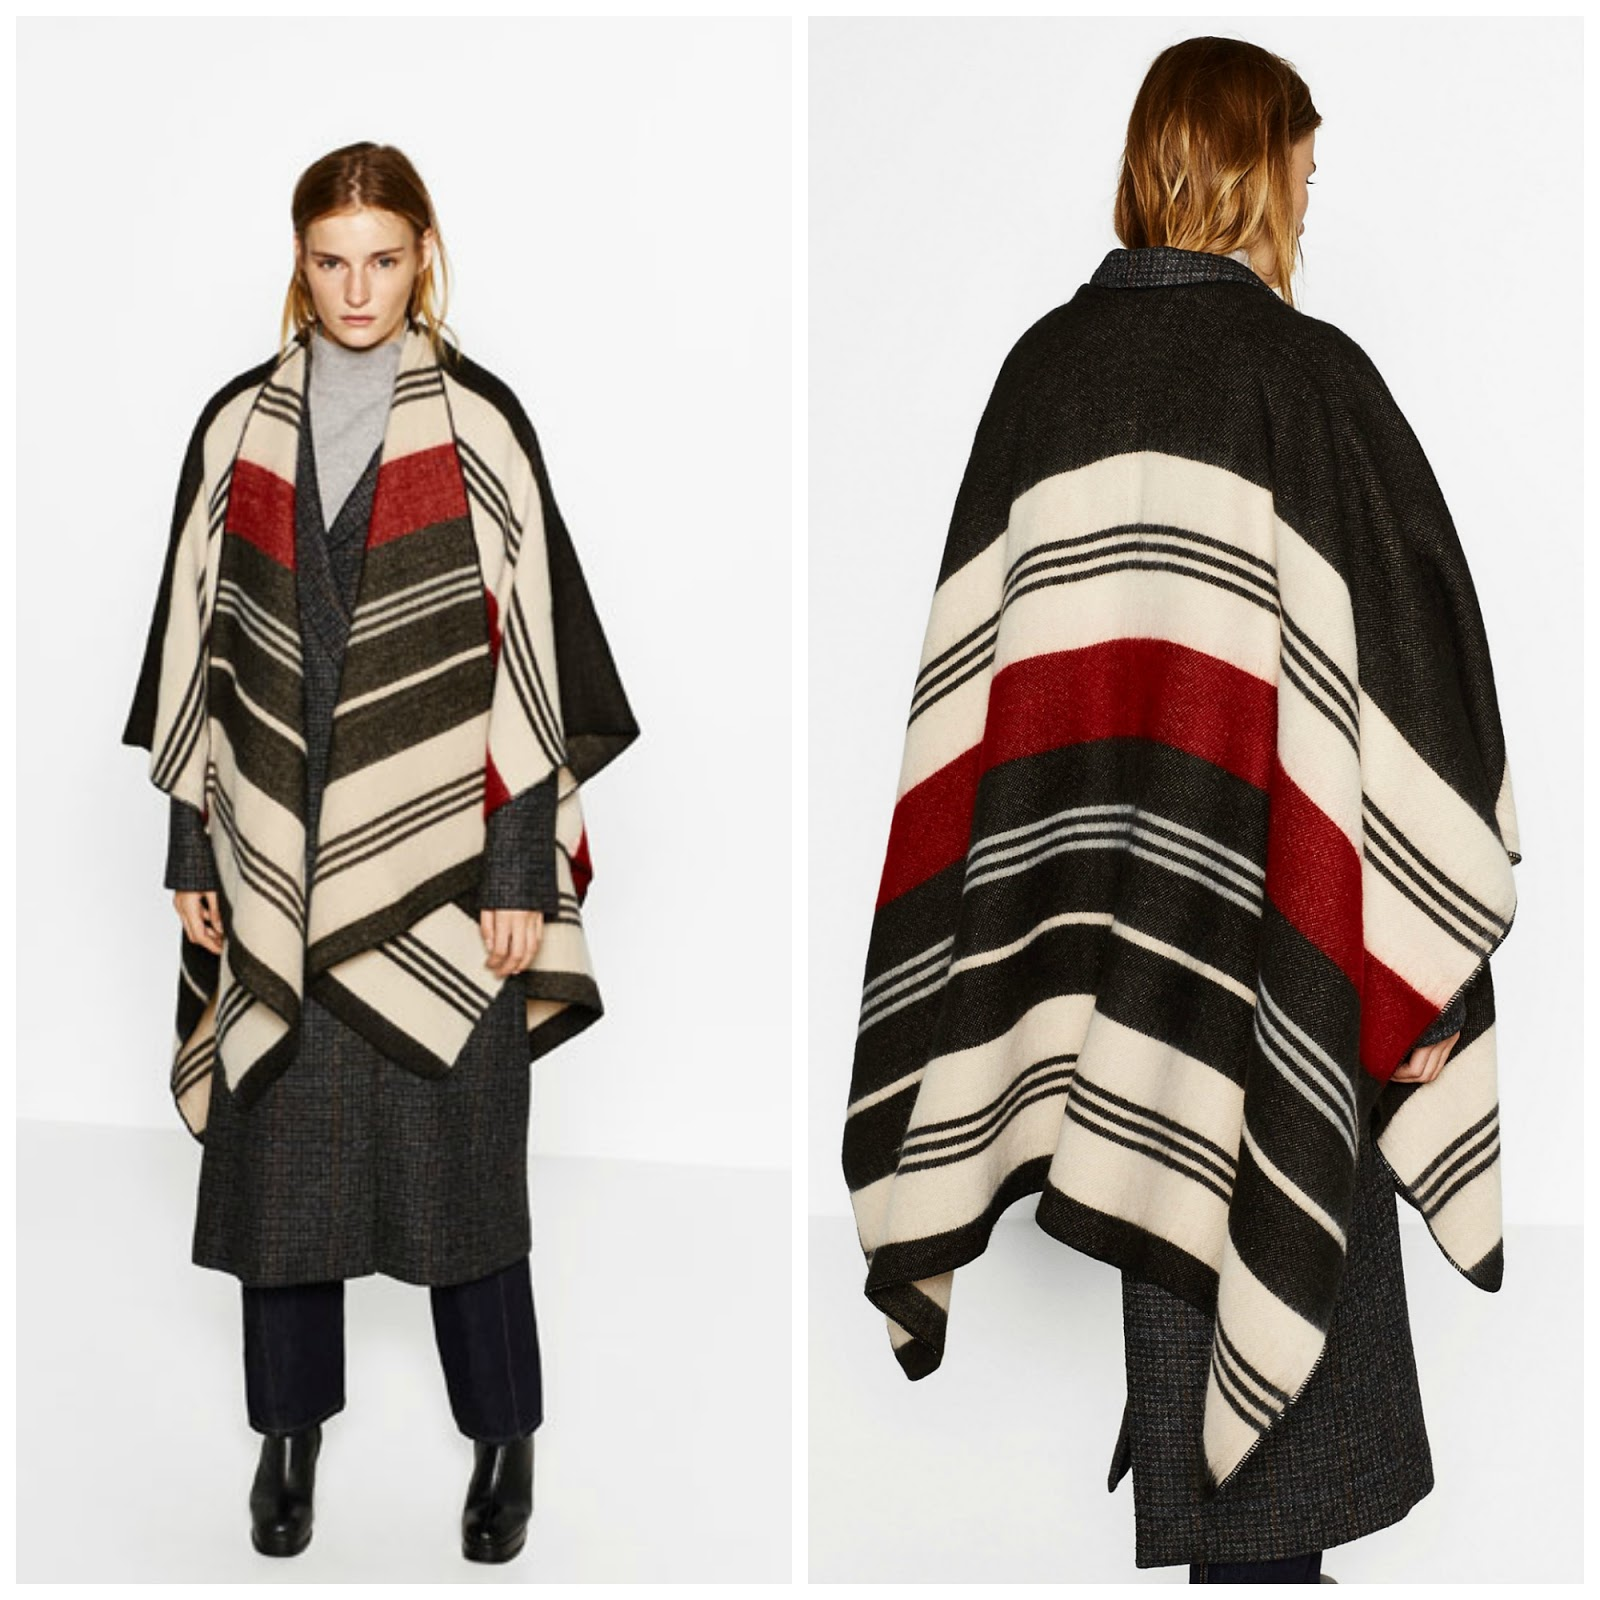 Stylish Ponchos Under $50